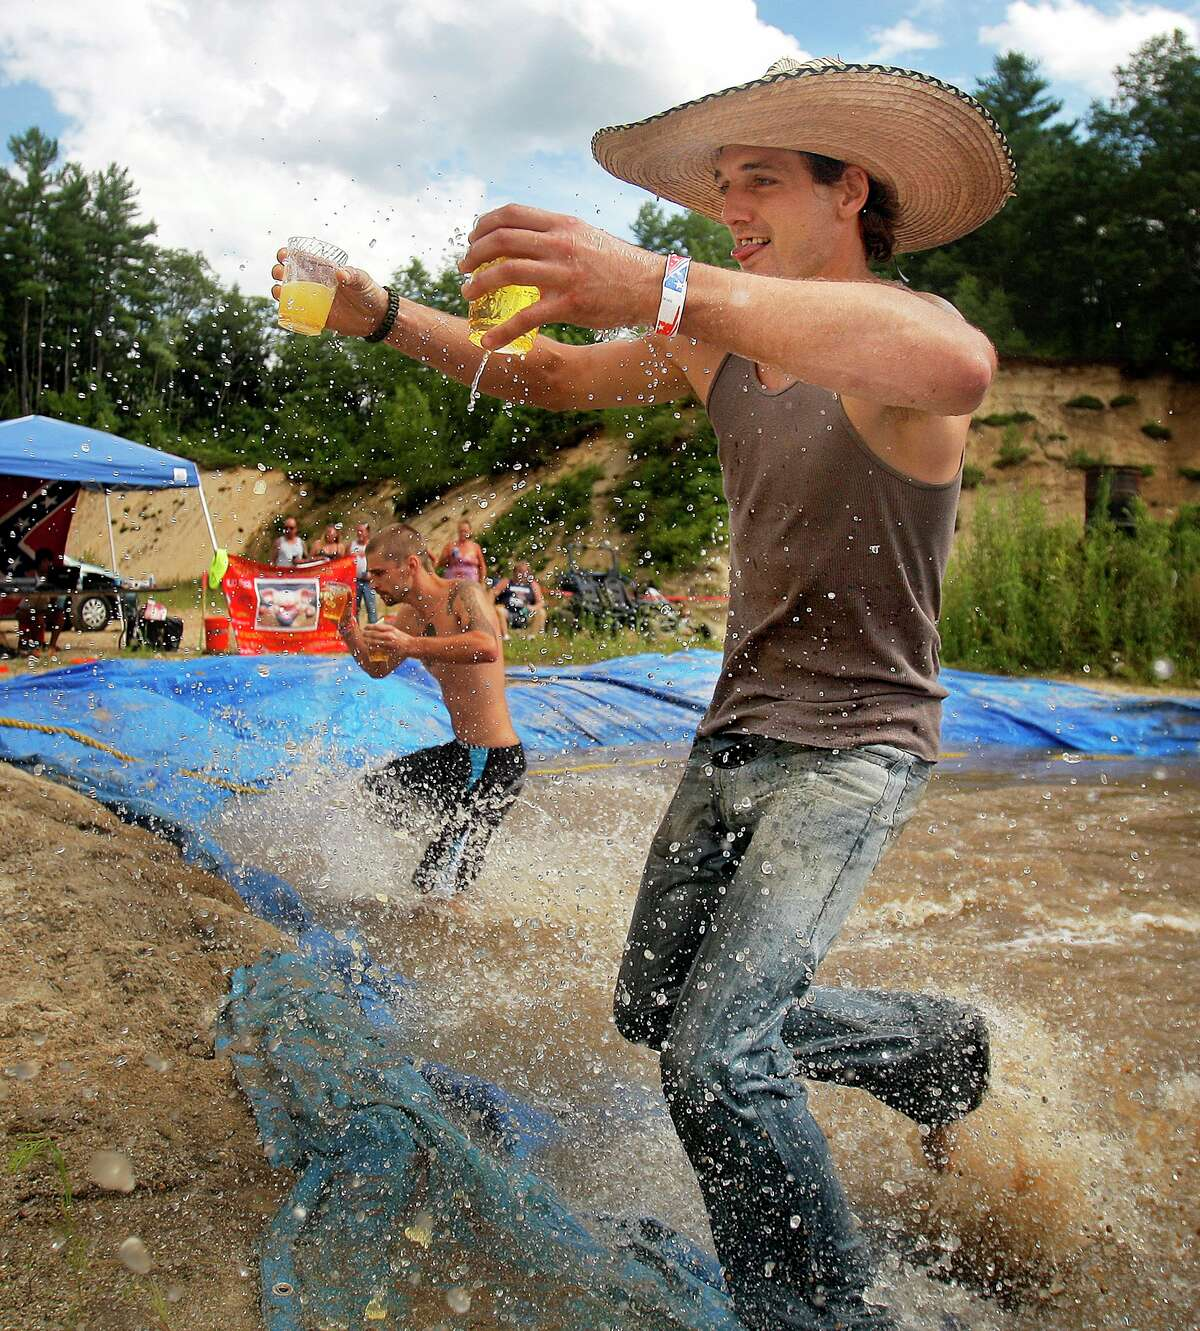 Burt Holmquist of Peru concentrates on keeping his footing while competing in the beer carrying competition at the Redneck Olympics in Hebron, Saturday, August 3, 2013. (Photo by Gabe Souza/Portland Press Herald via Getty Images)